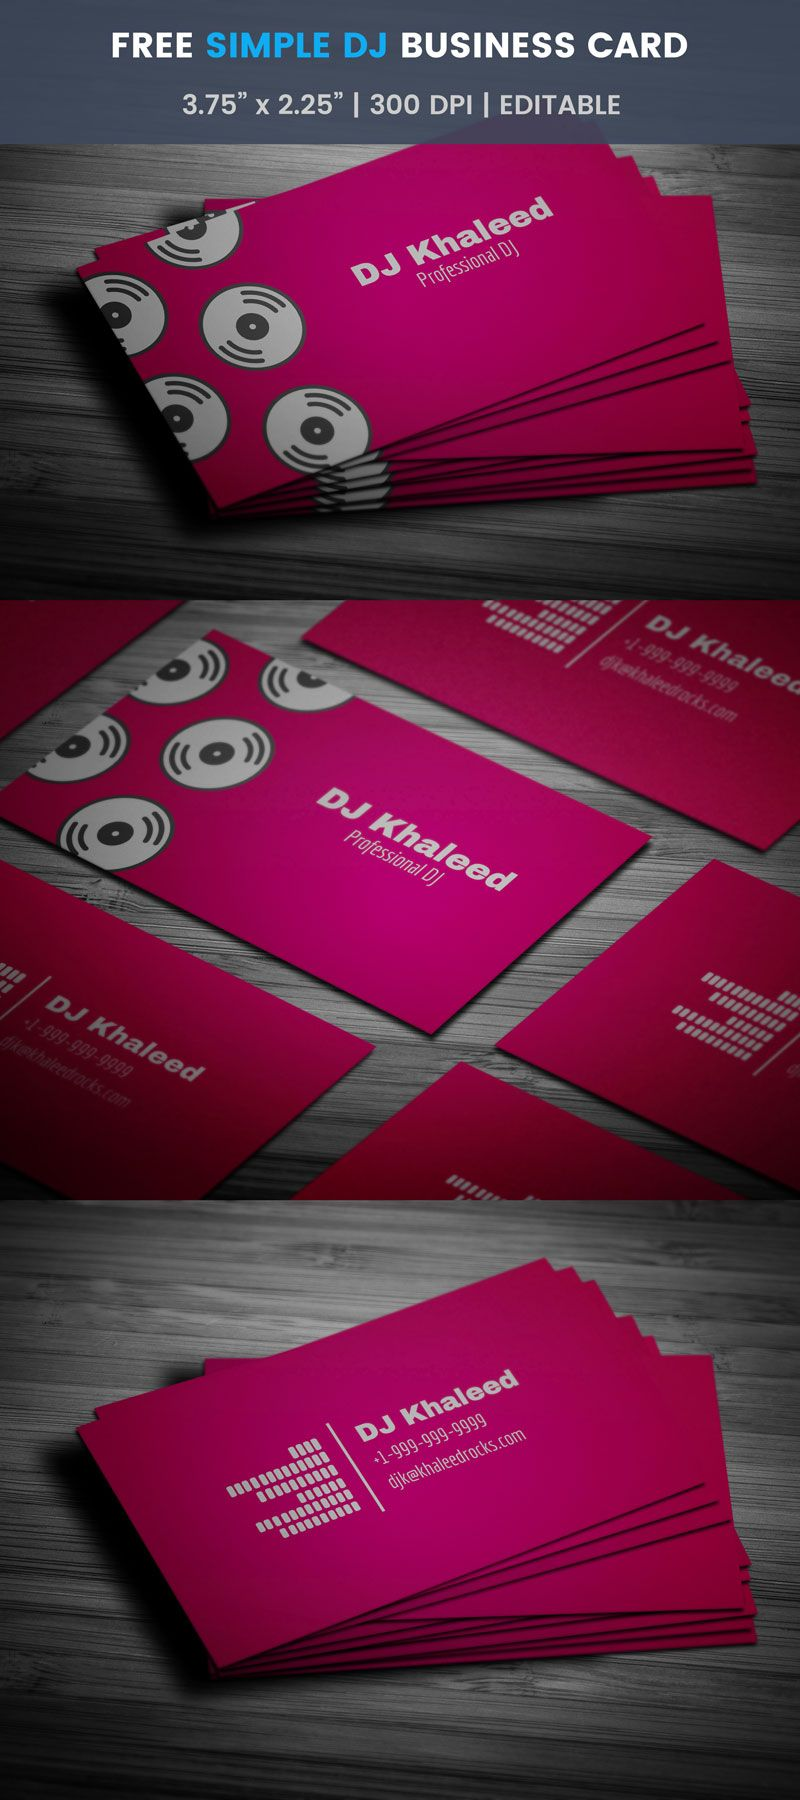 Simple Dj Business Card Full Preview Free Business Card